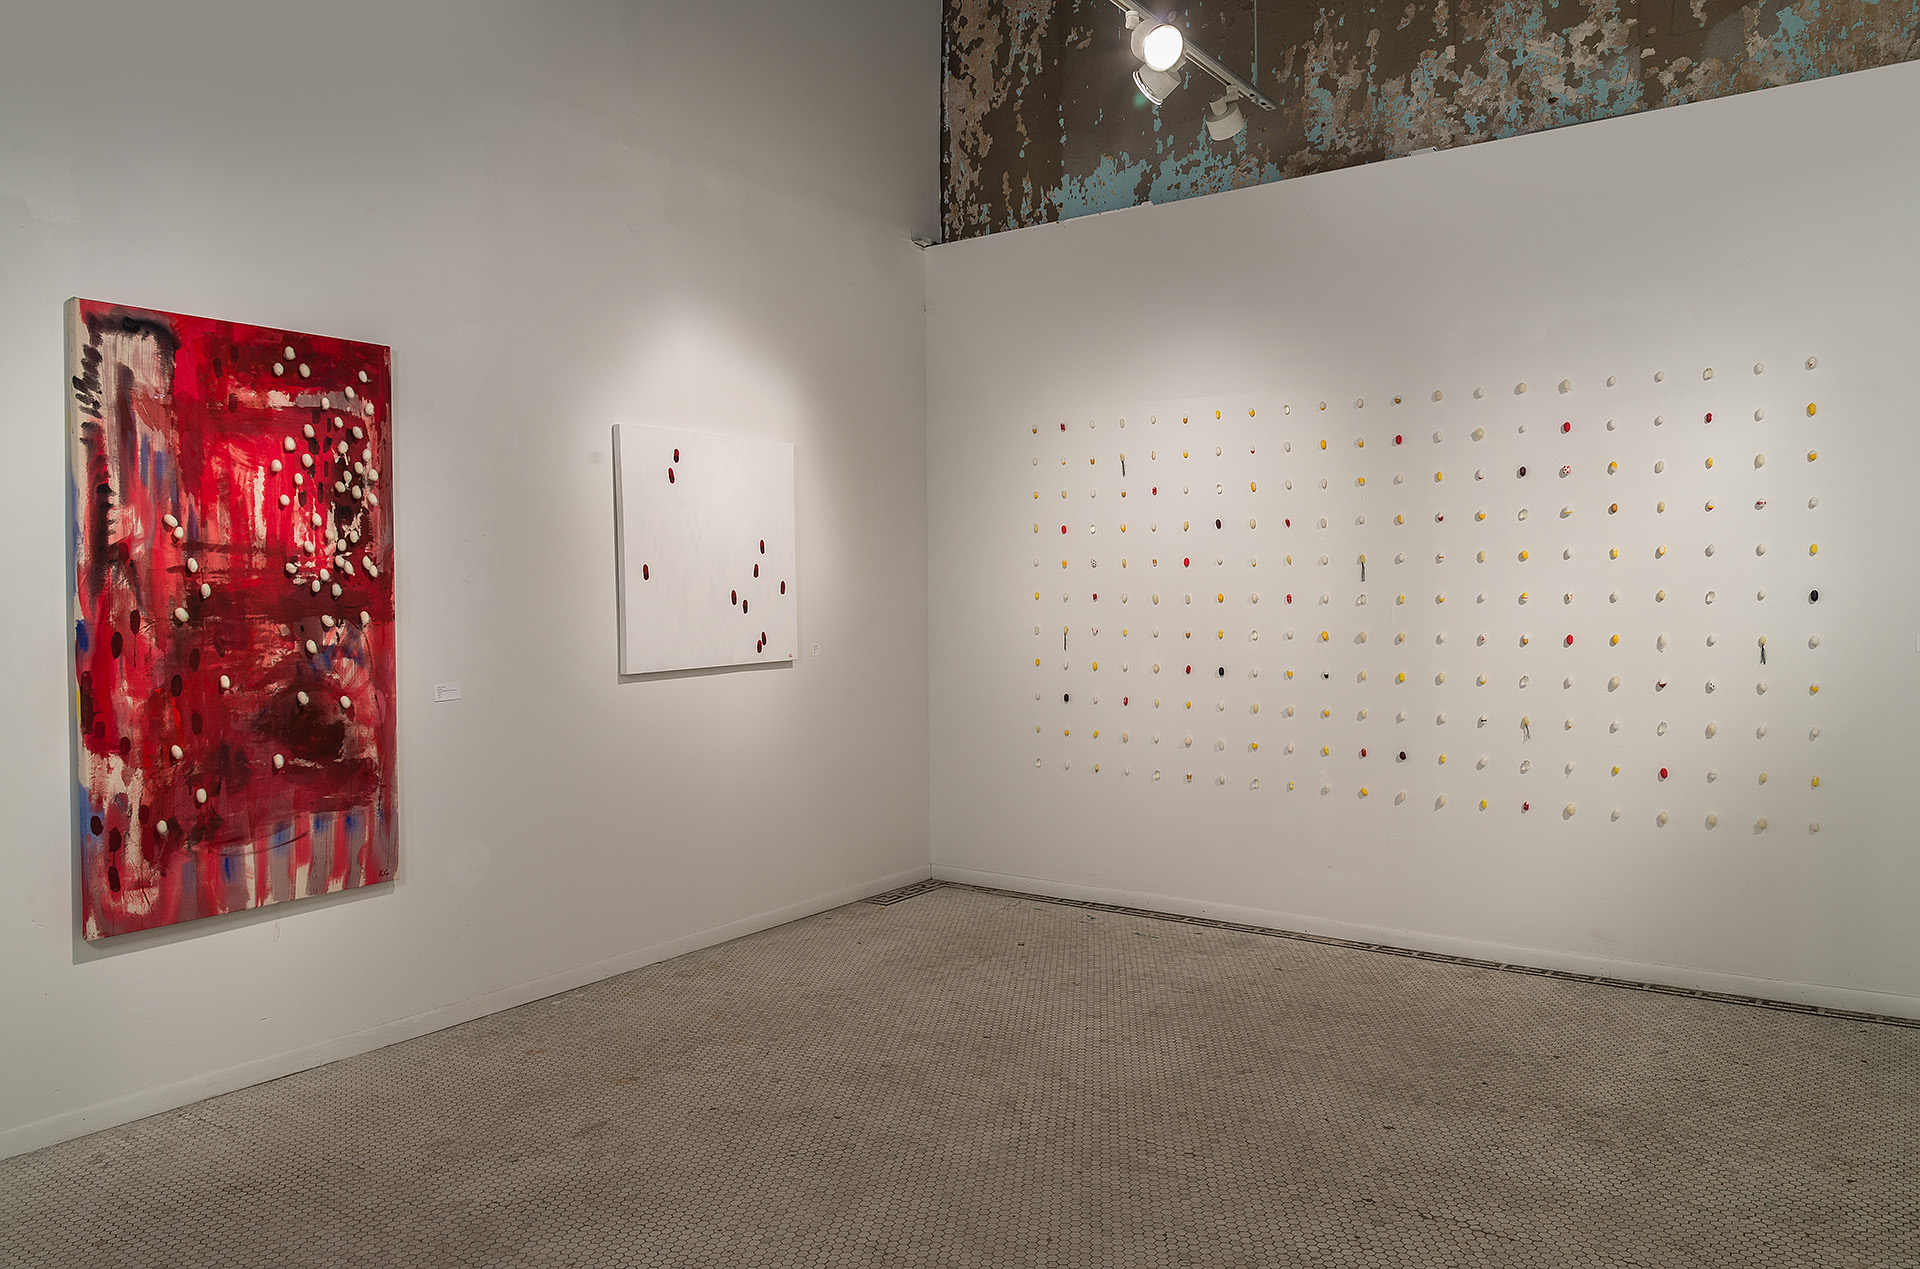 Ruse and Reality installation view